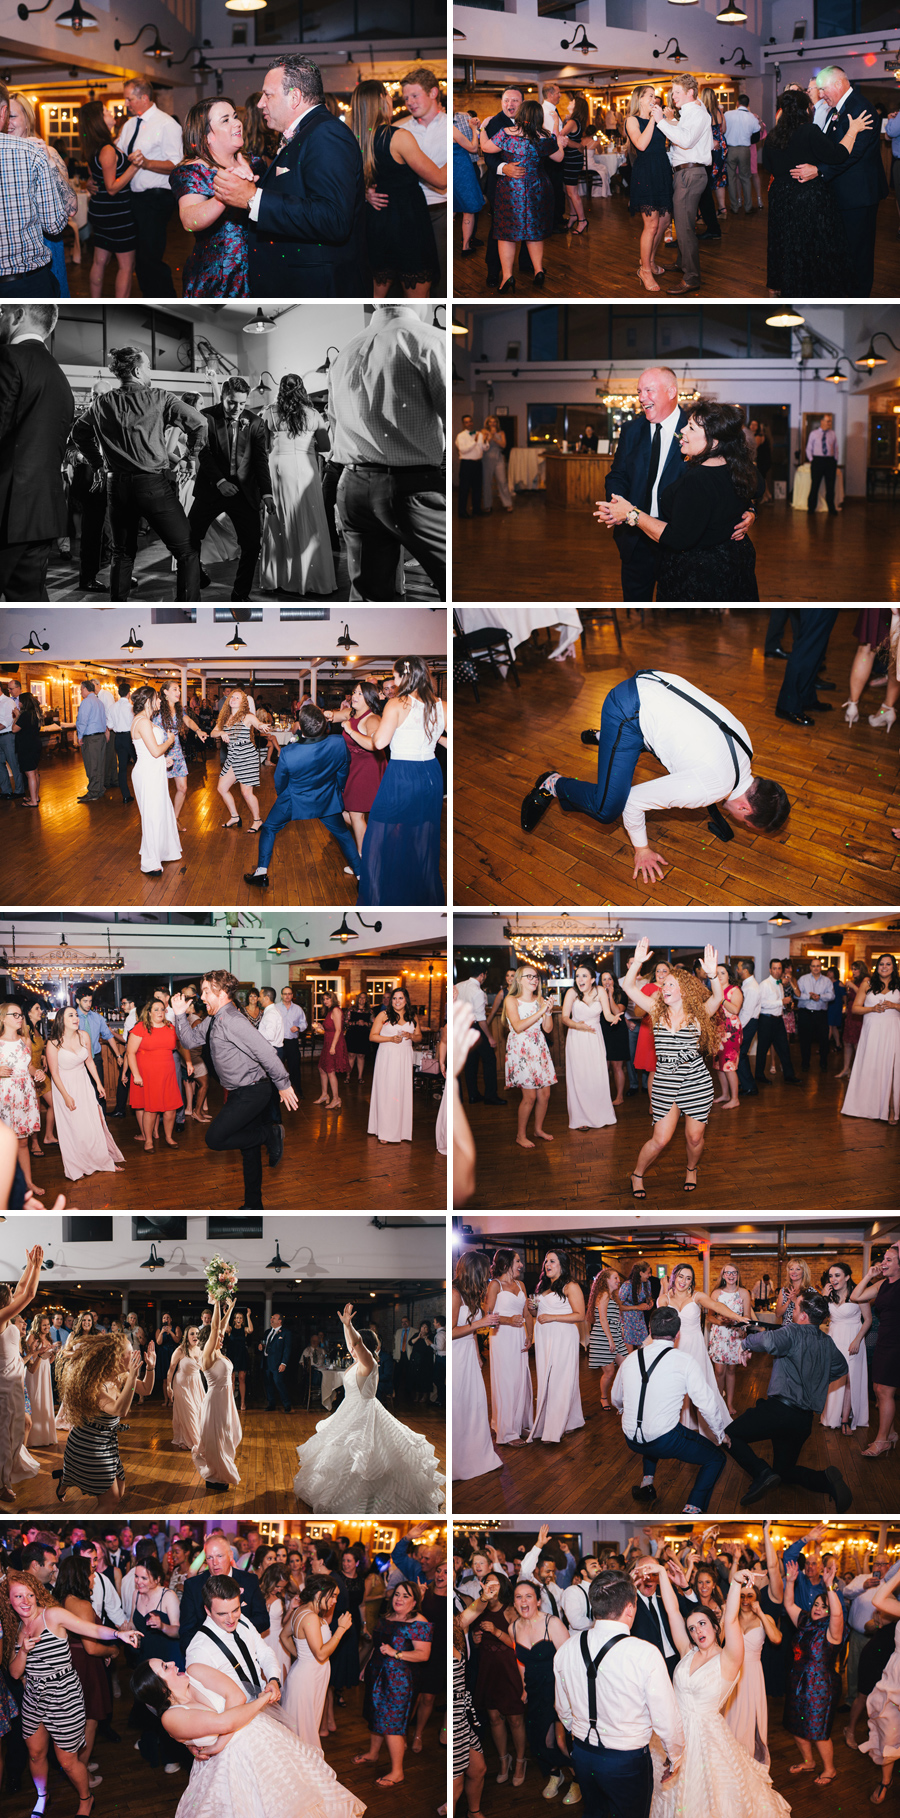 collage of photos from the wedding reception dance party at the Hotel at the Lafayette in Buffalo NY